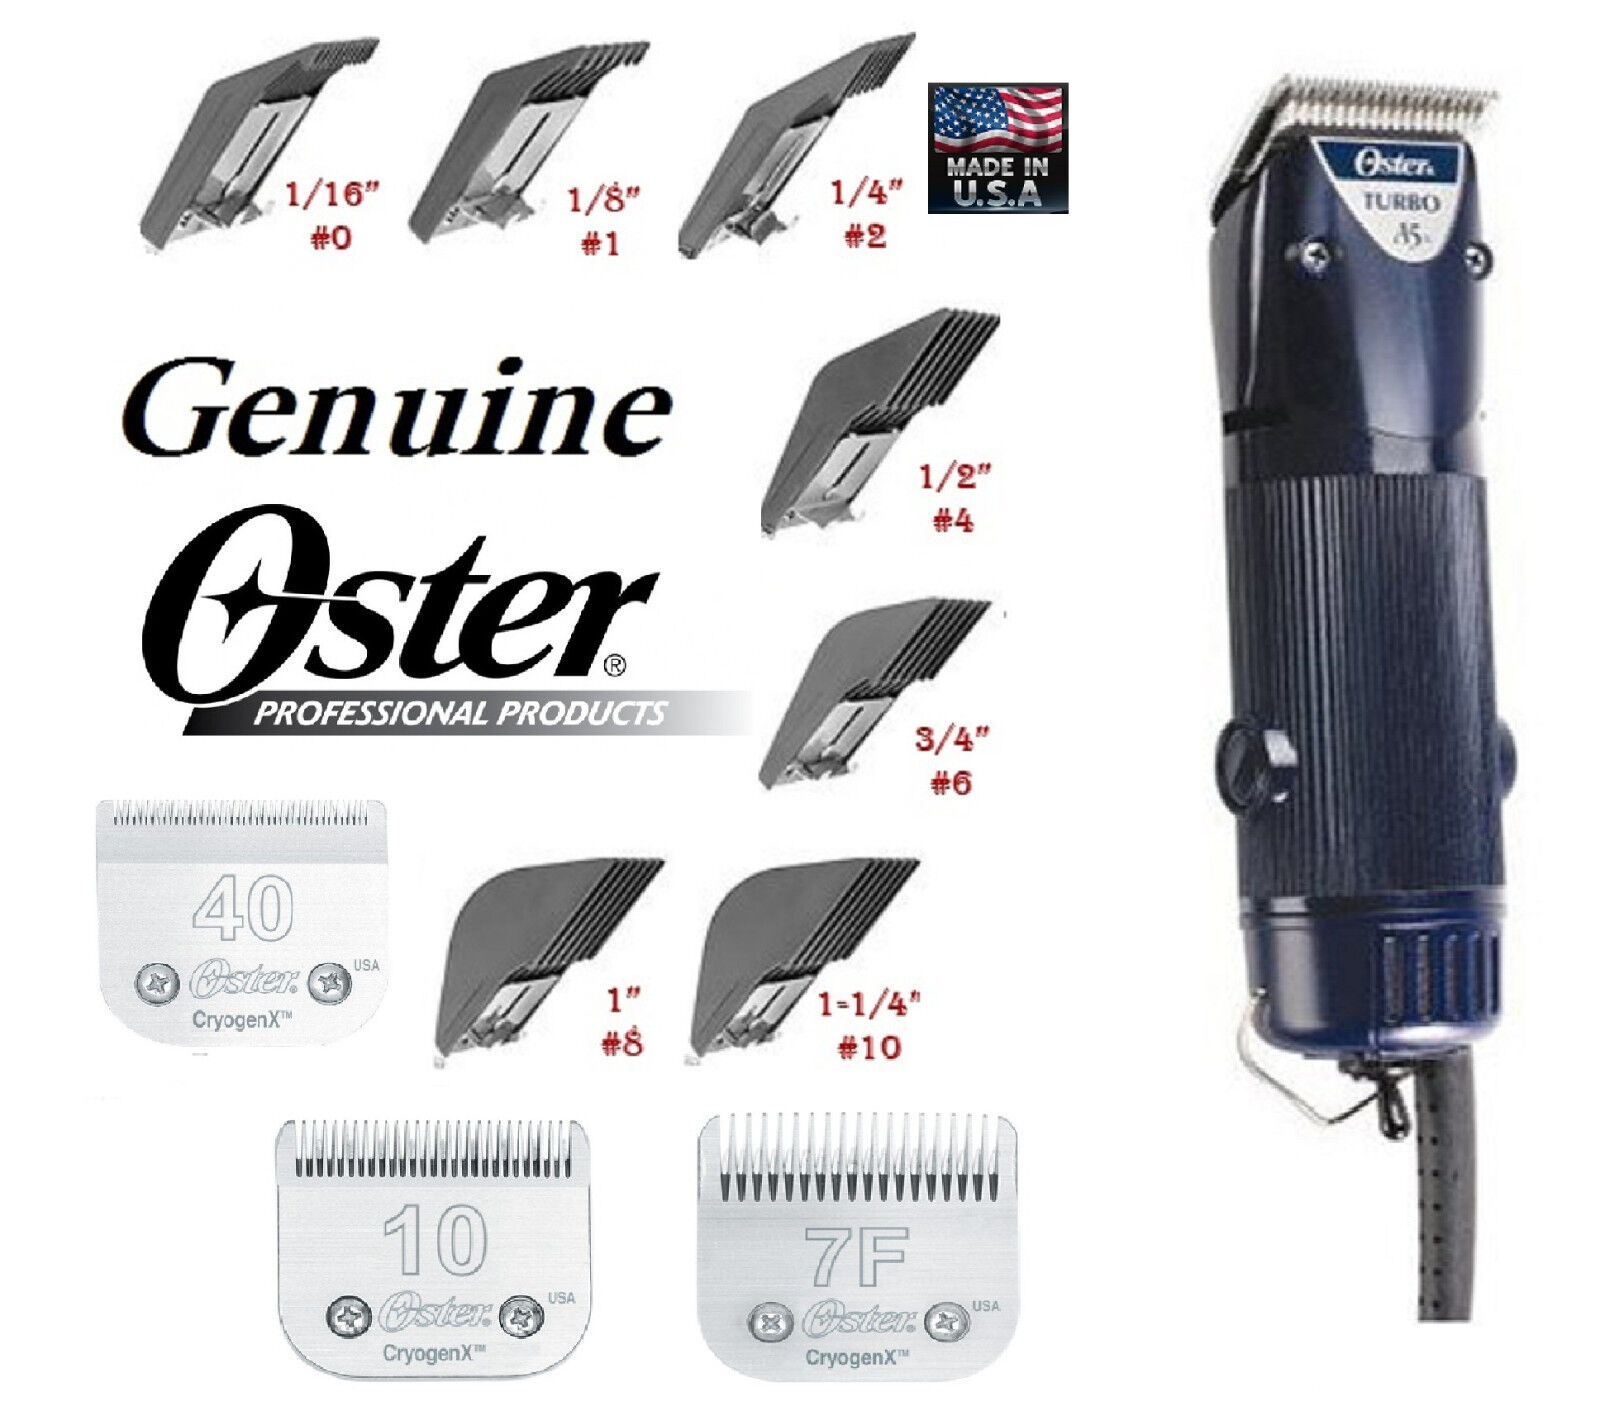 Oster A5 Turbo Tosatrice & 10 40 7F Lame & 7 PC Snap On Guida Universale Pettine